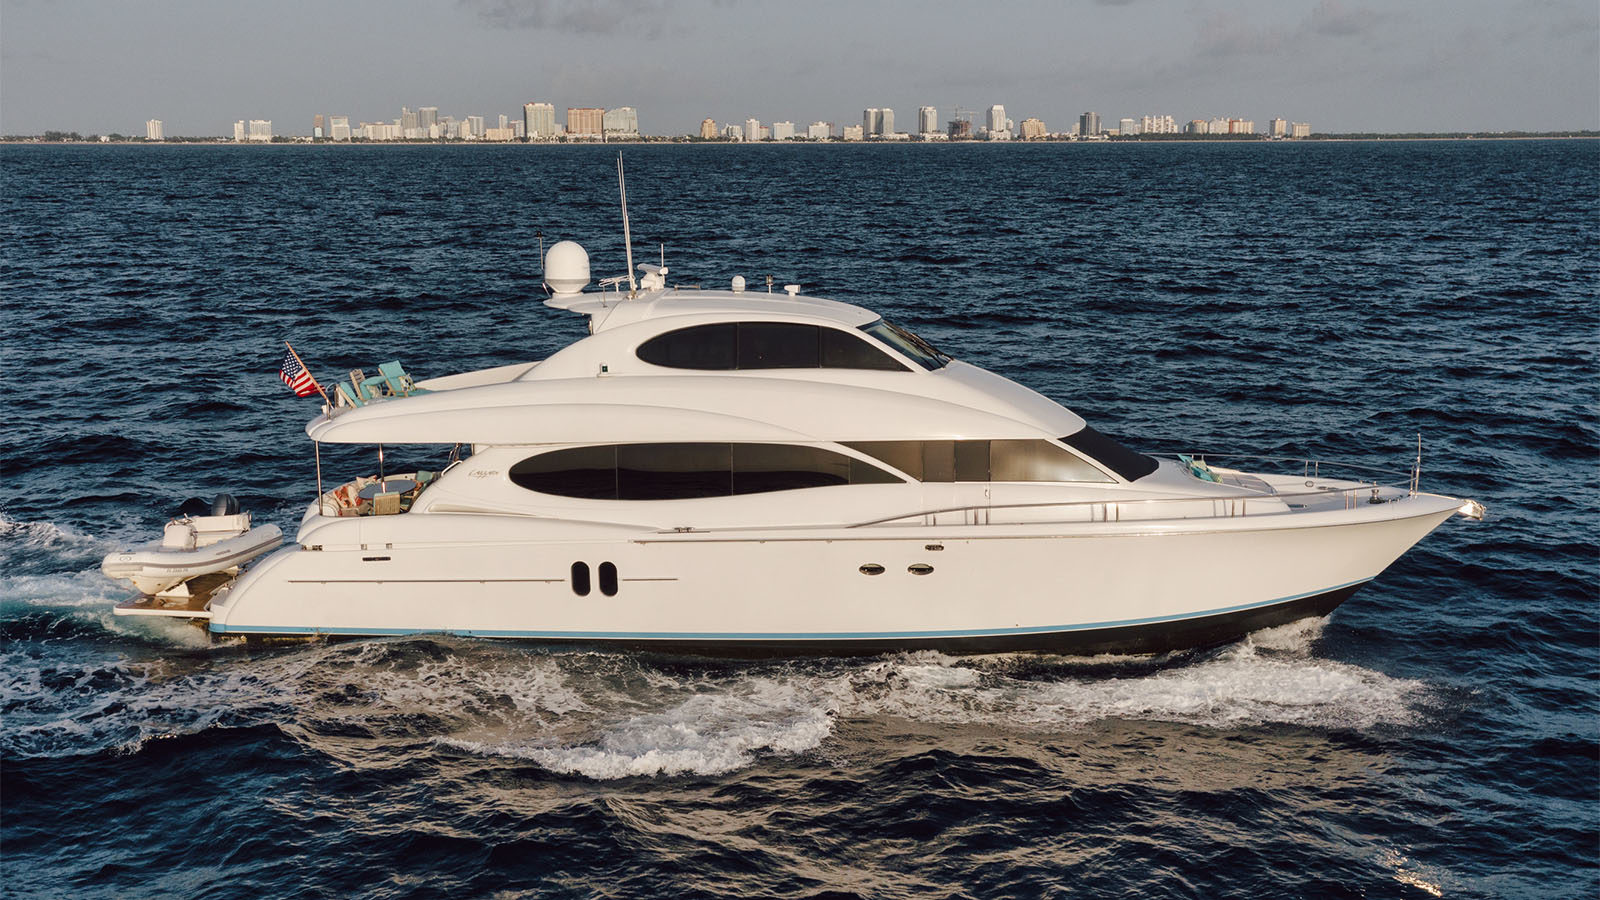 KEMOSABE Yacht for Sale - IYC